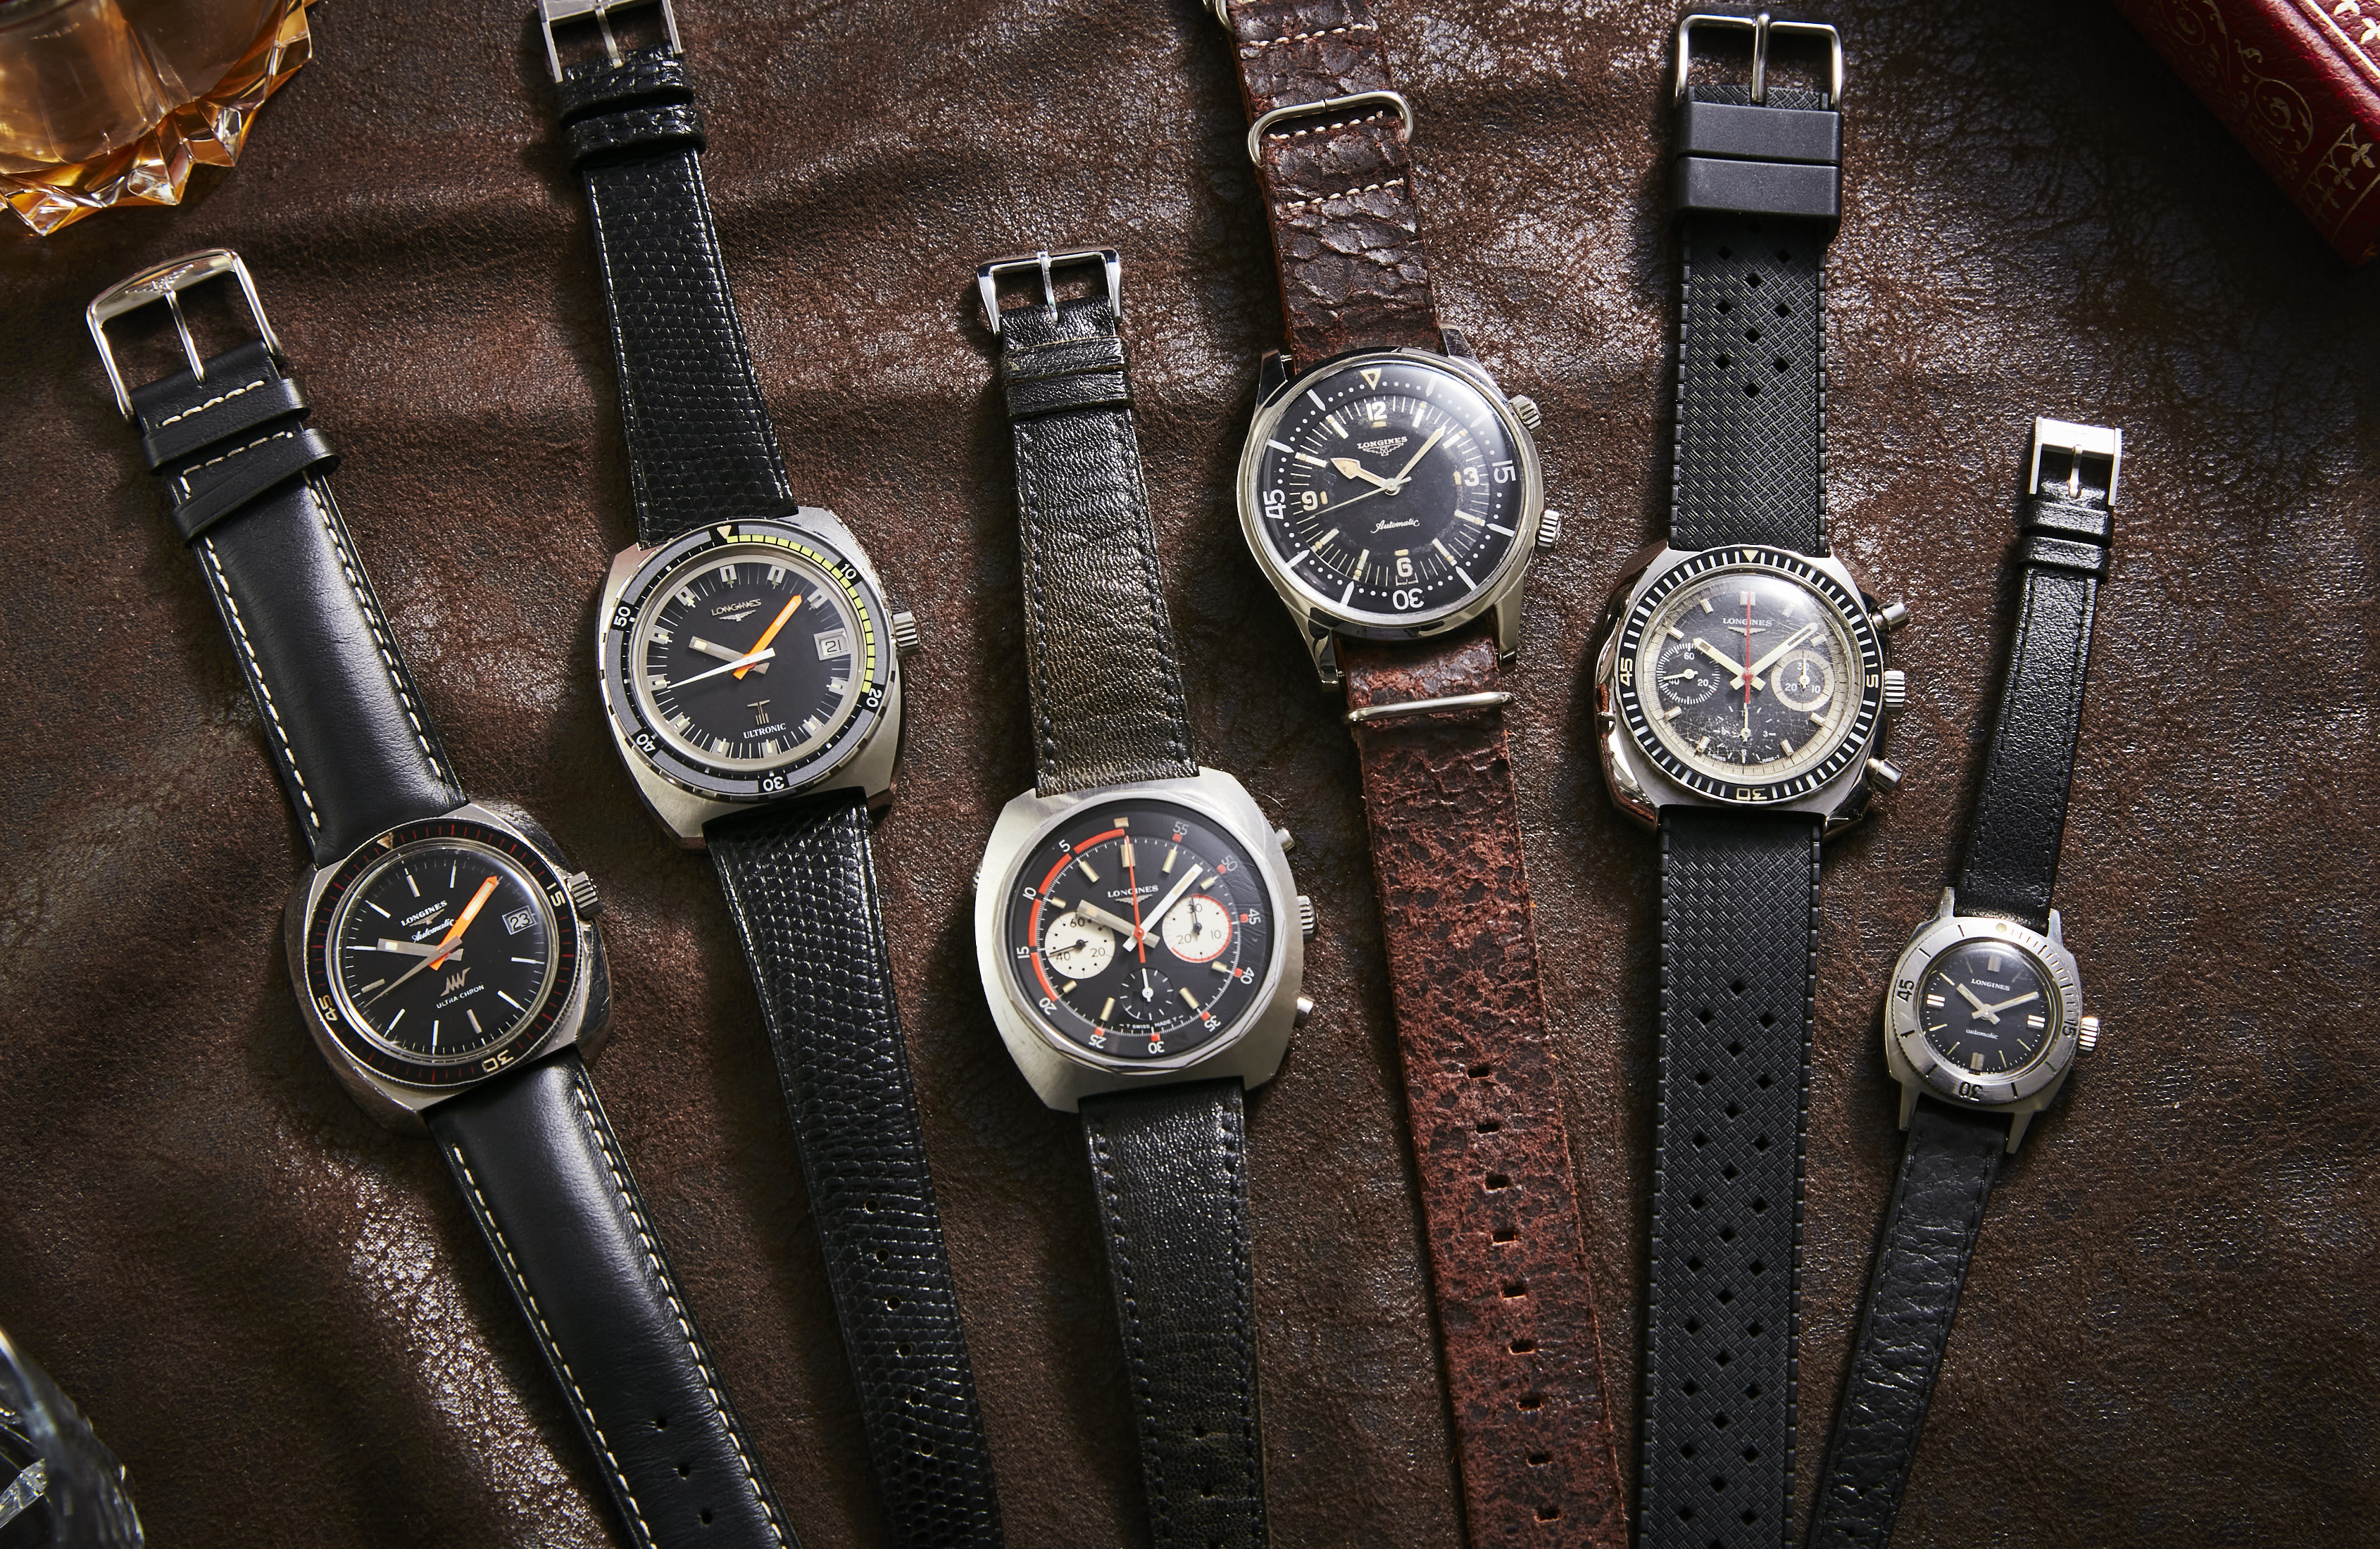 history of Longines dive watches